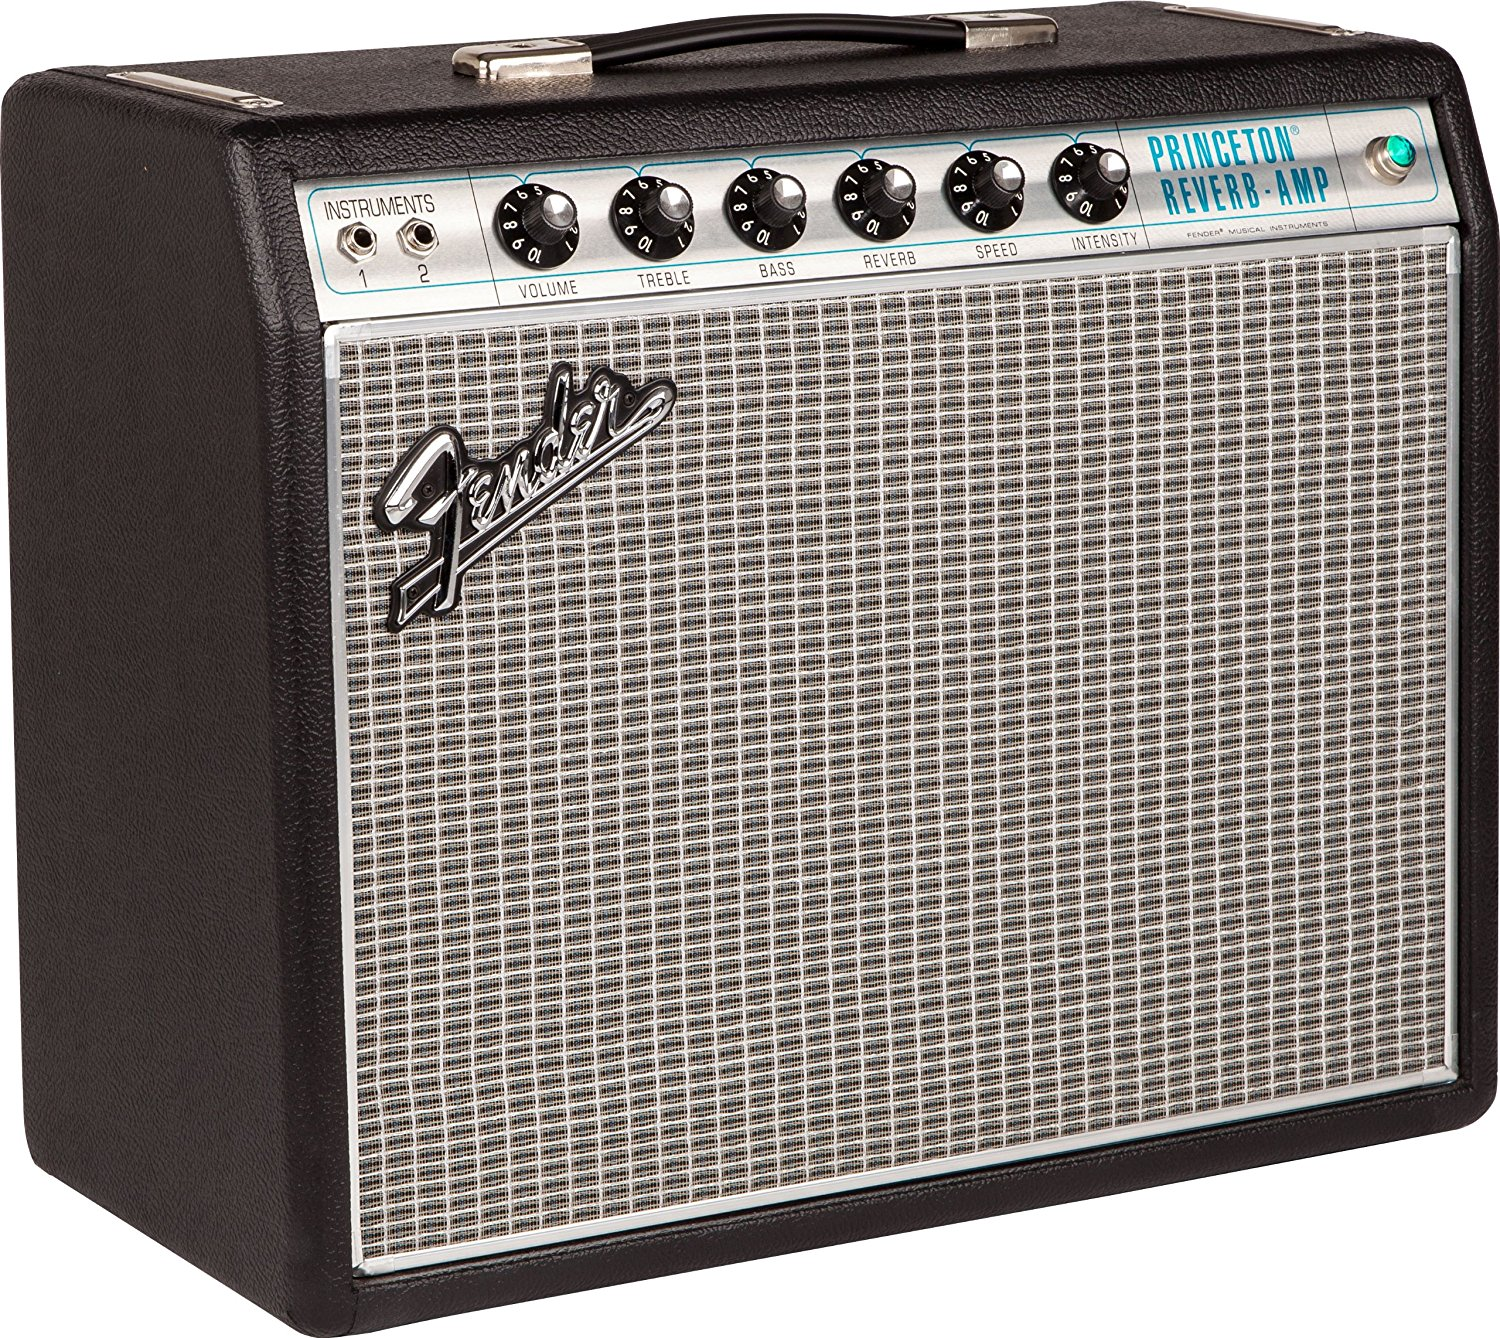 Best Solid State Amp 2019 5 Best Solid State Guitar Amps (2019)